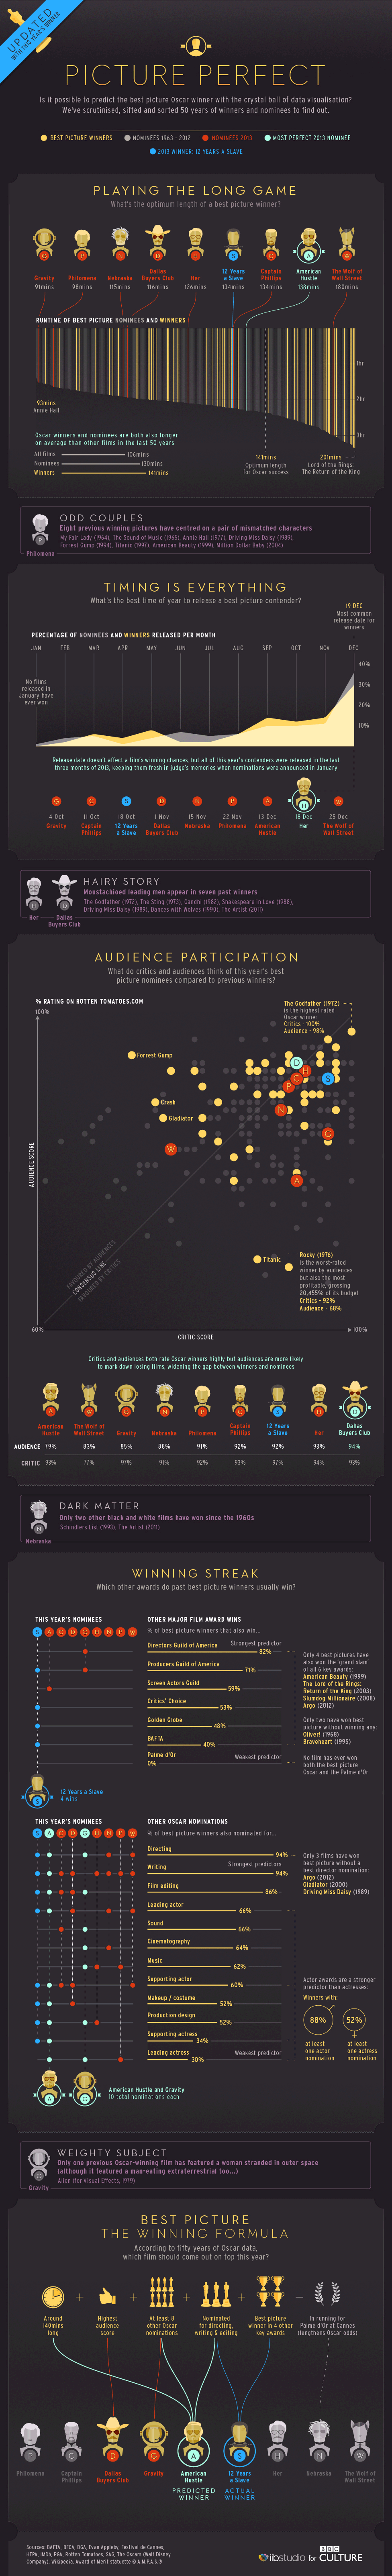 Picture perfect - The Oscars infographic - update